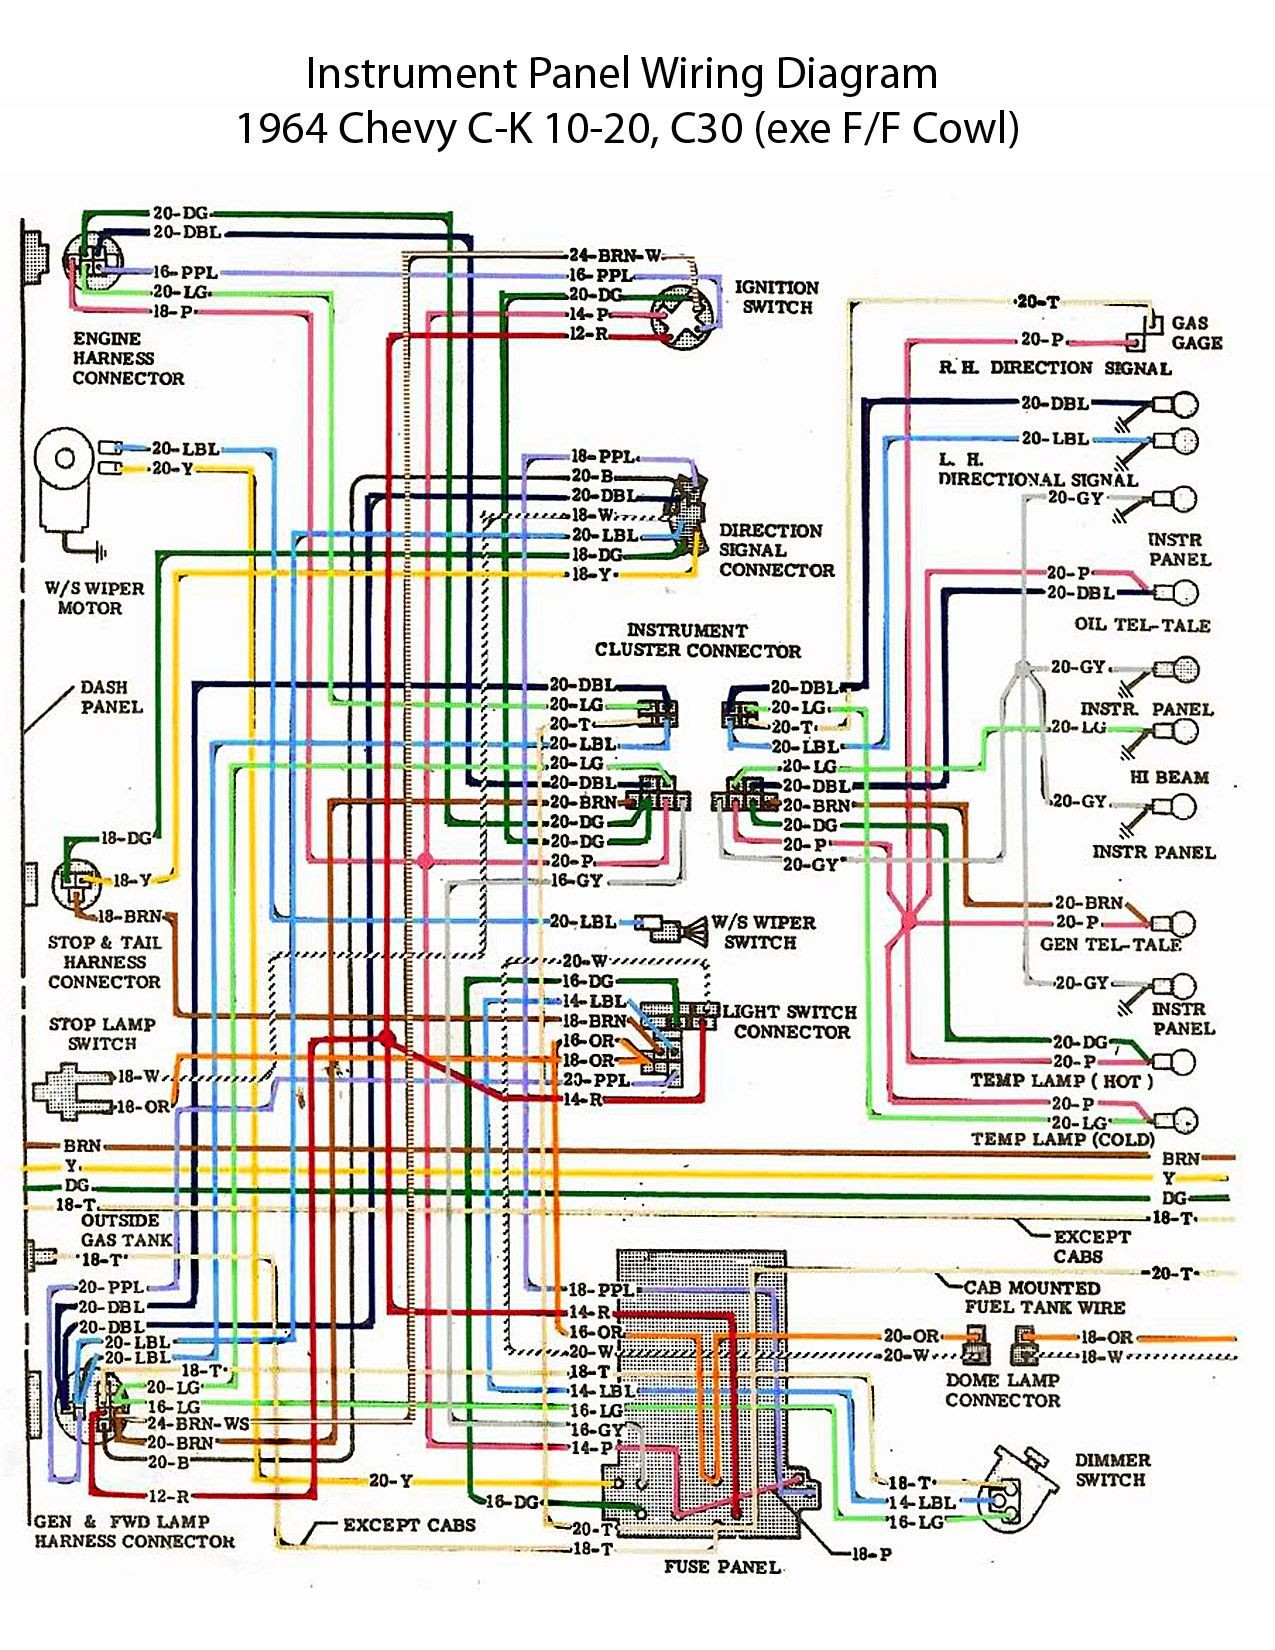 House Wiring Diagram Layout : Engine layout diagram house wiring